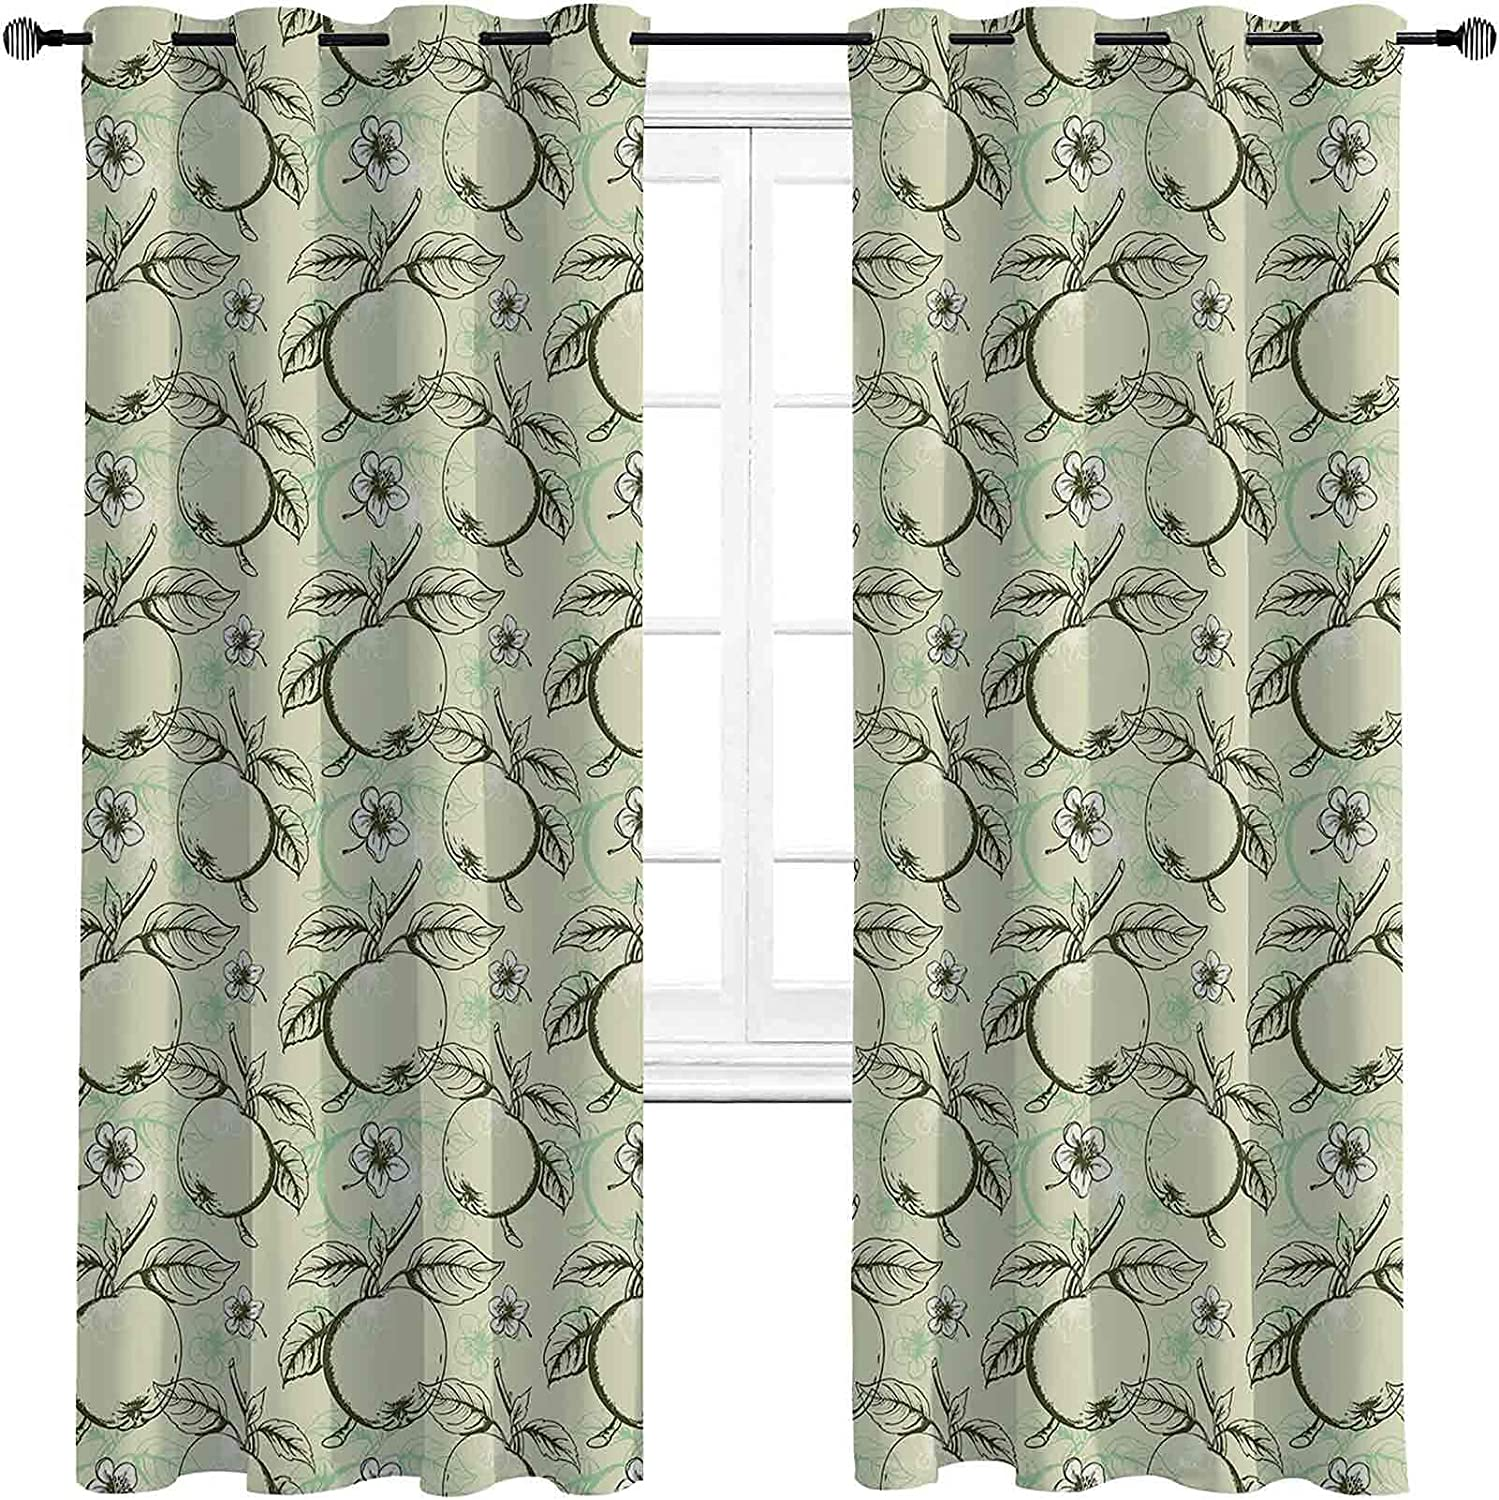 Apple Colorado Springs Mall Time sale The Living Room has St Powerful Curtains Blackout Vintage